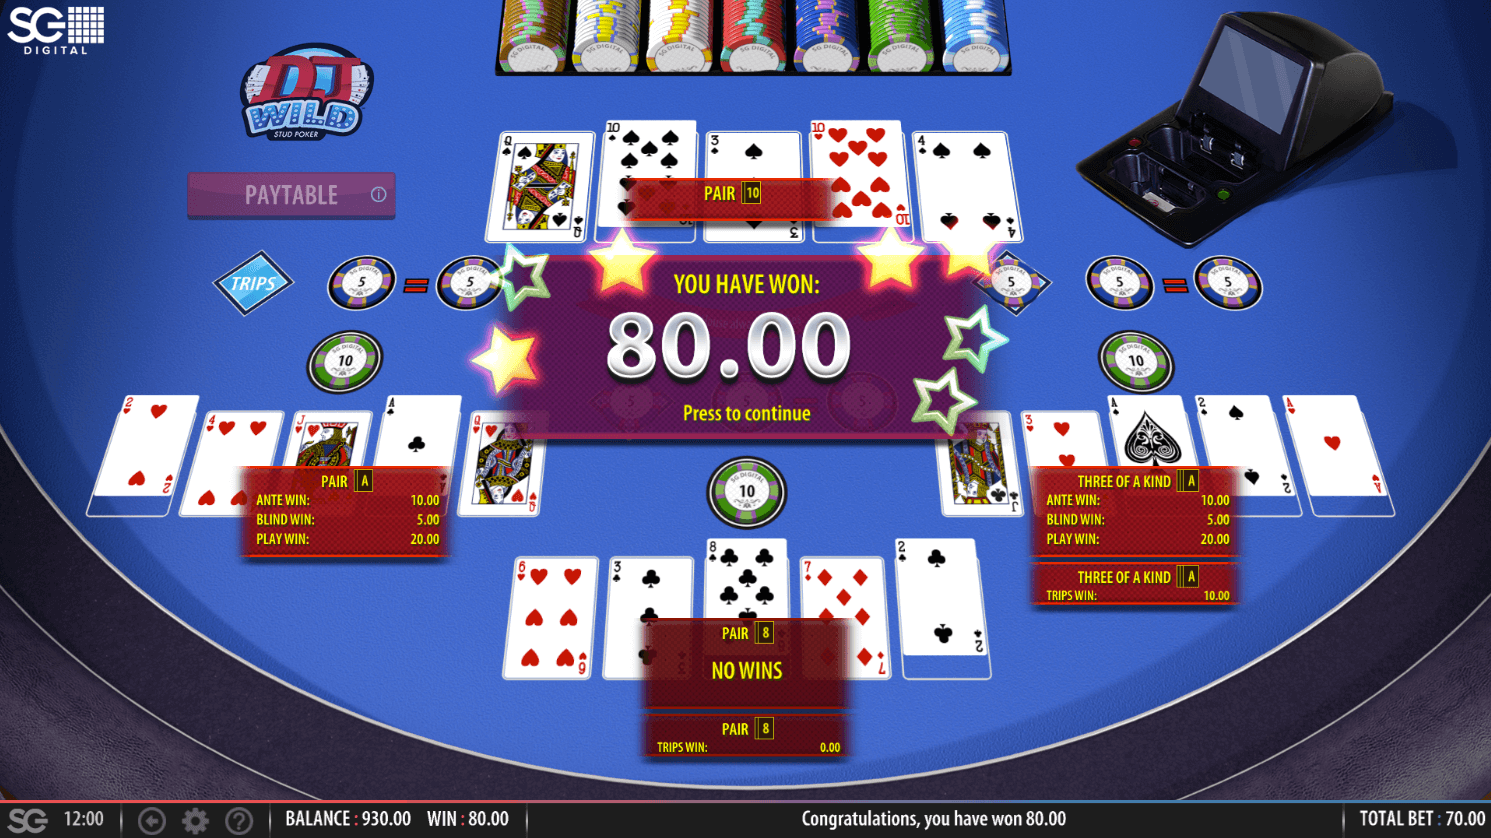 A screenshot of DJ Wild Stud Poker where the player won two of three hands played